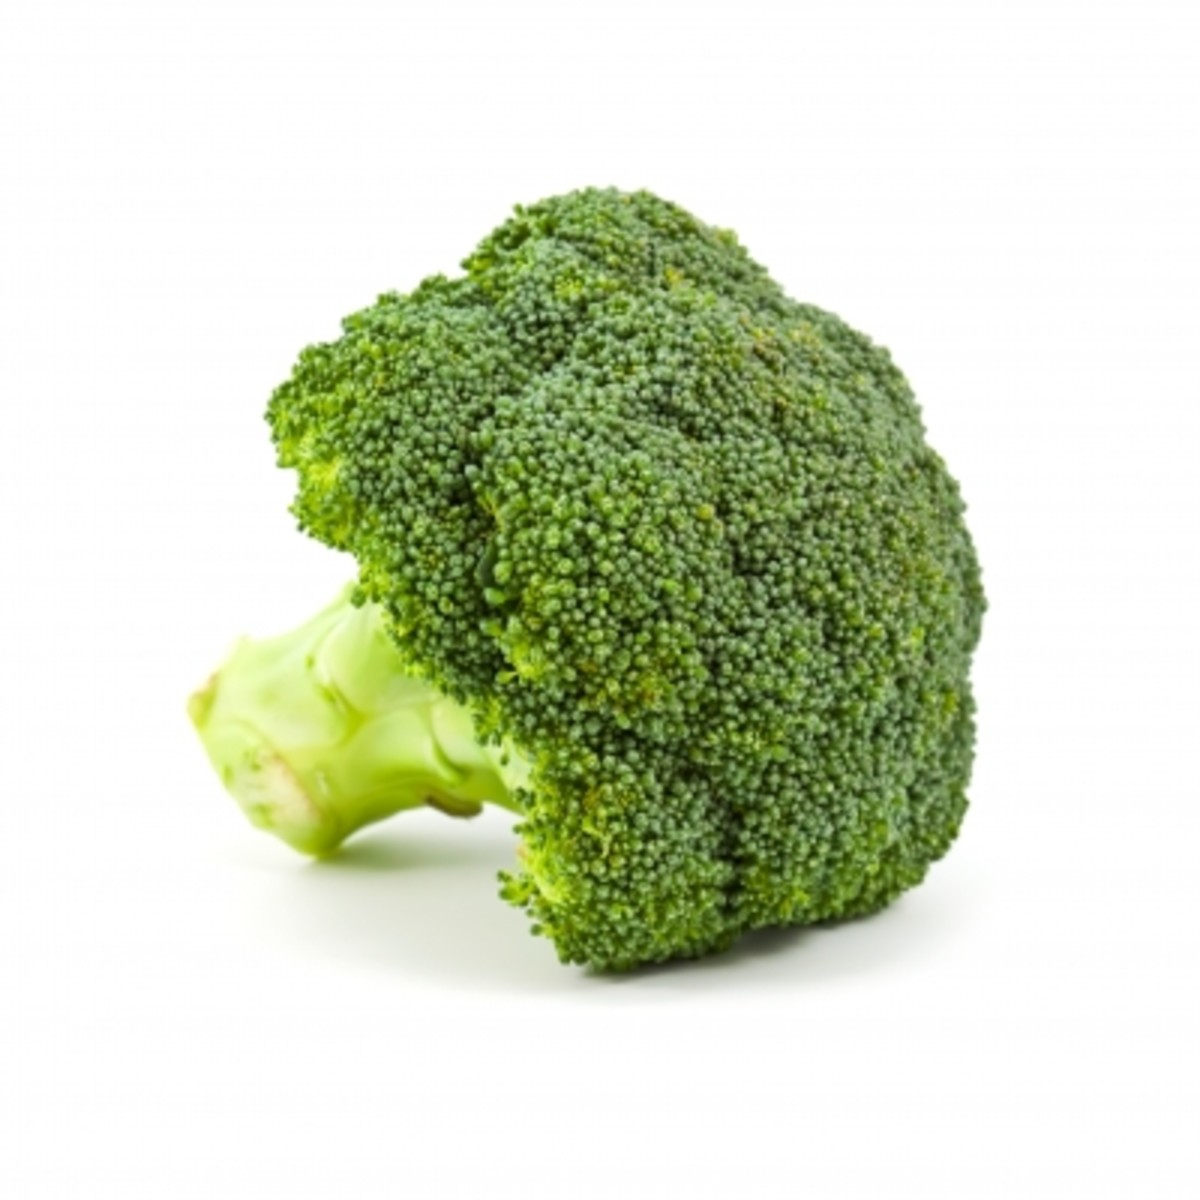 Broccoli is a cruciferous superfood that has a high level of Vitamin A too. I